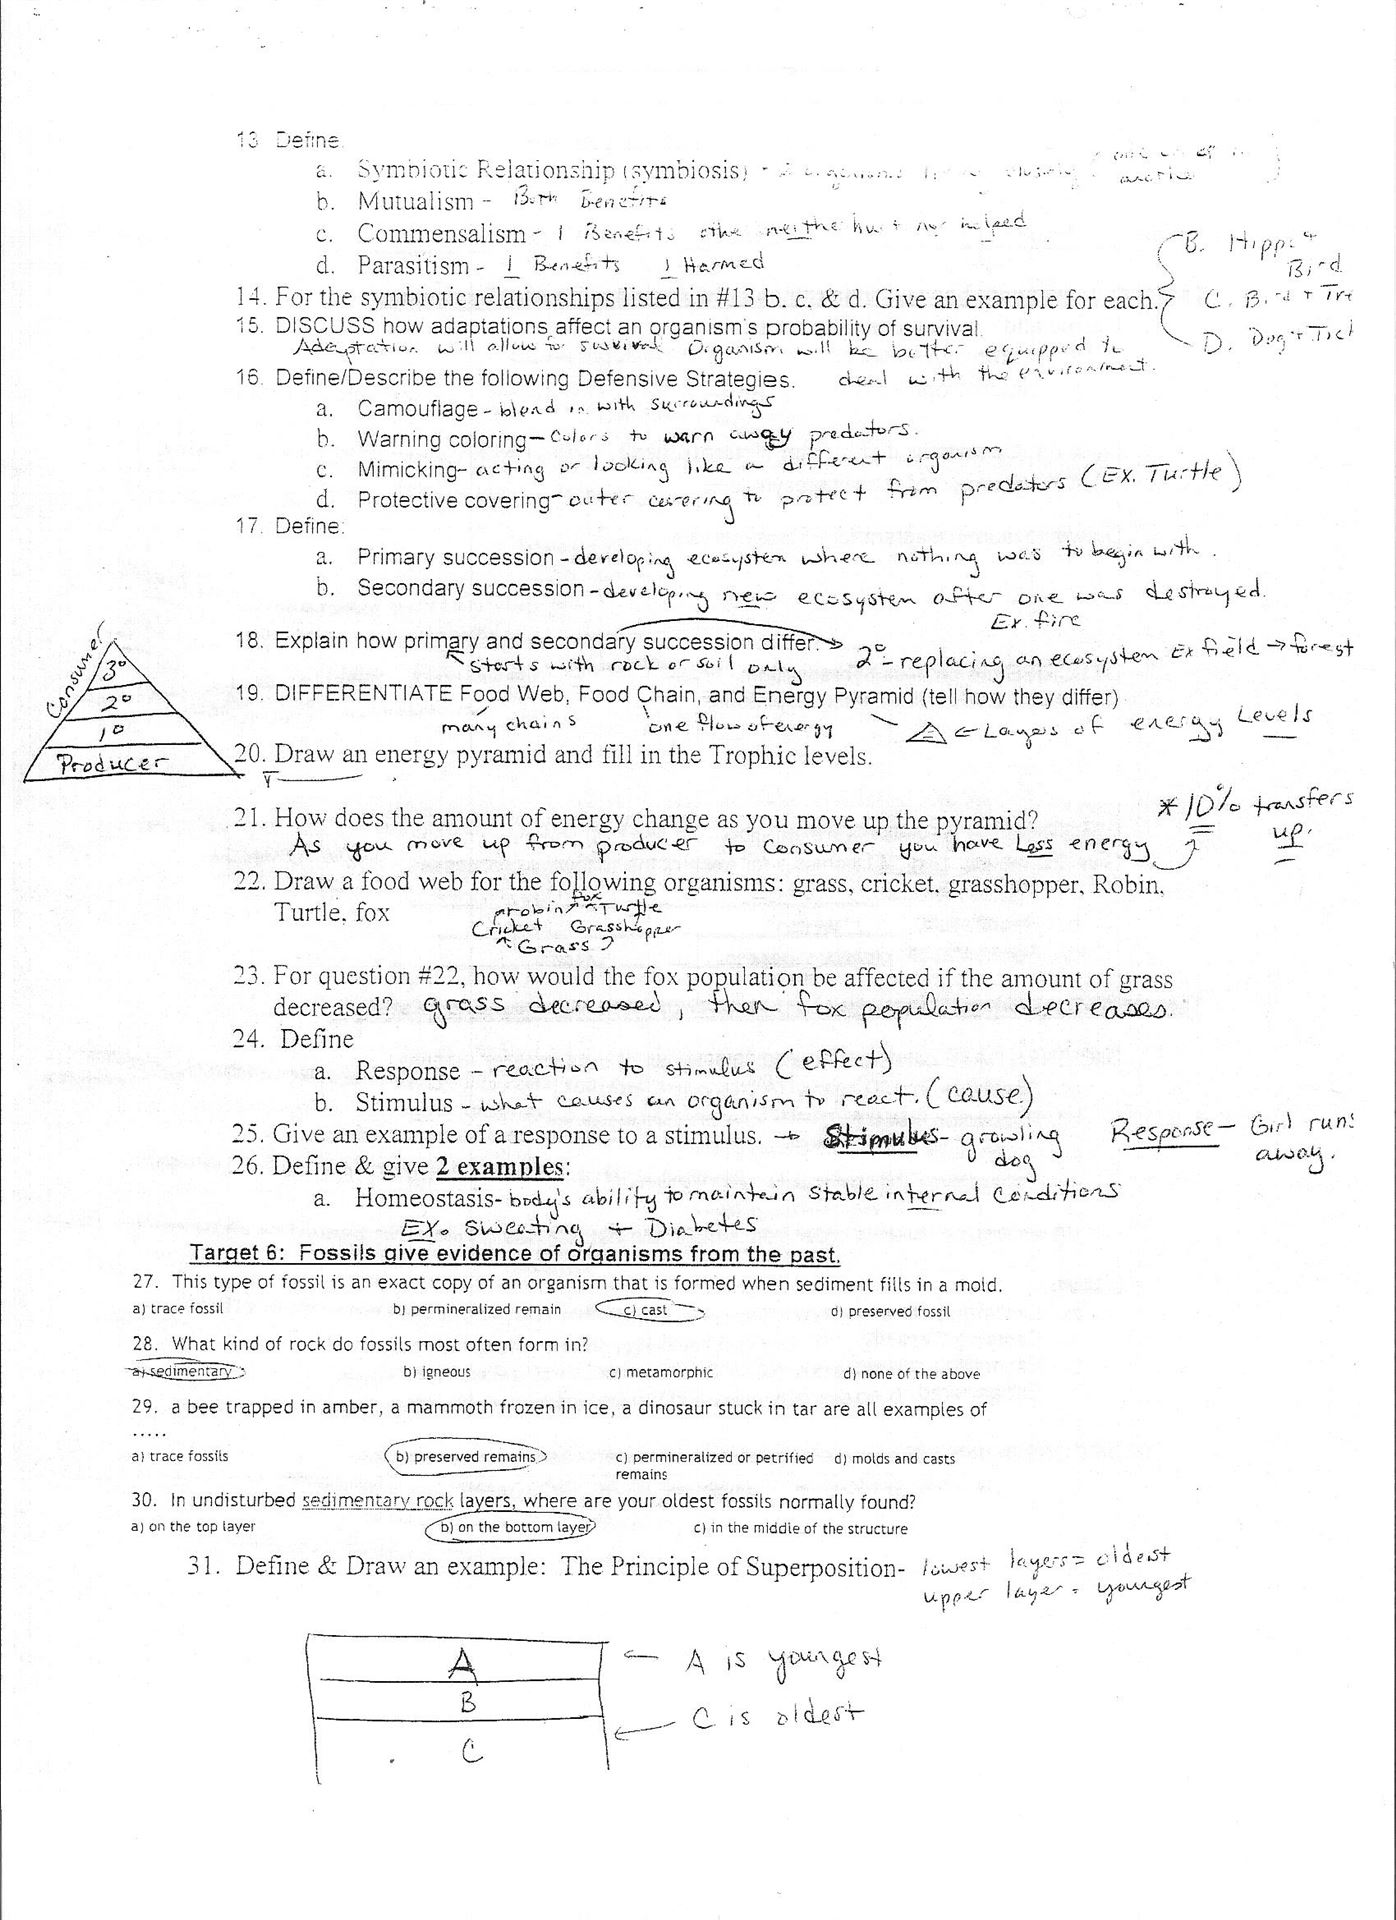 Symbiosis Worksheet Answer Key